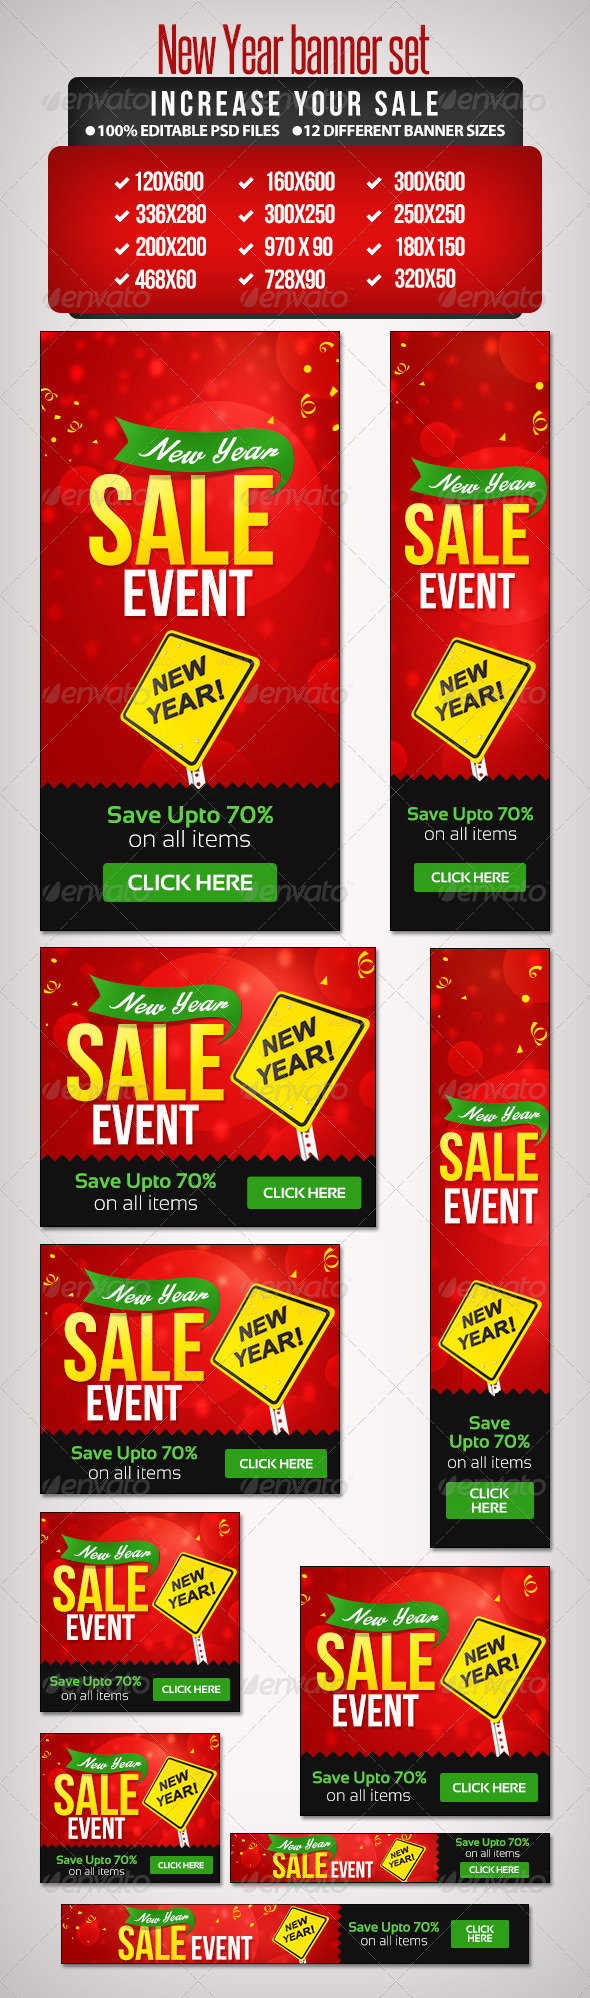 GraphicRiver New Year Sales Banner Set 2 12 Sizes 6426880